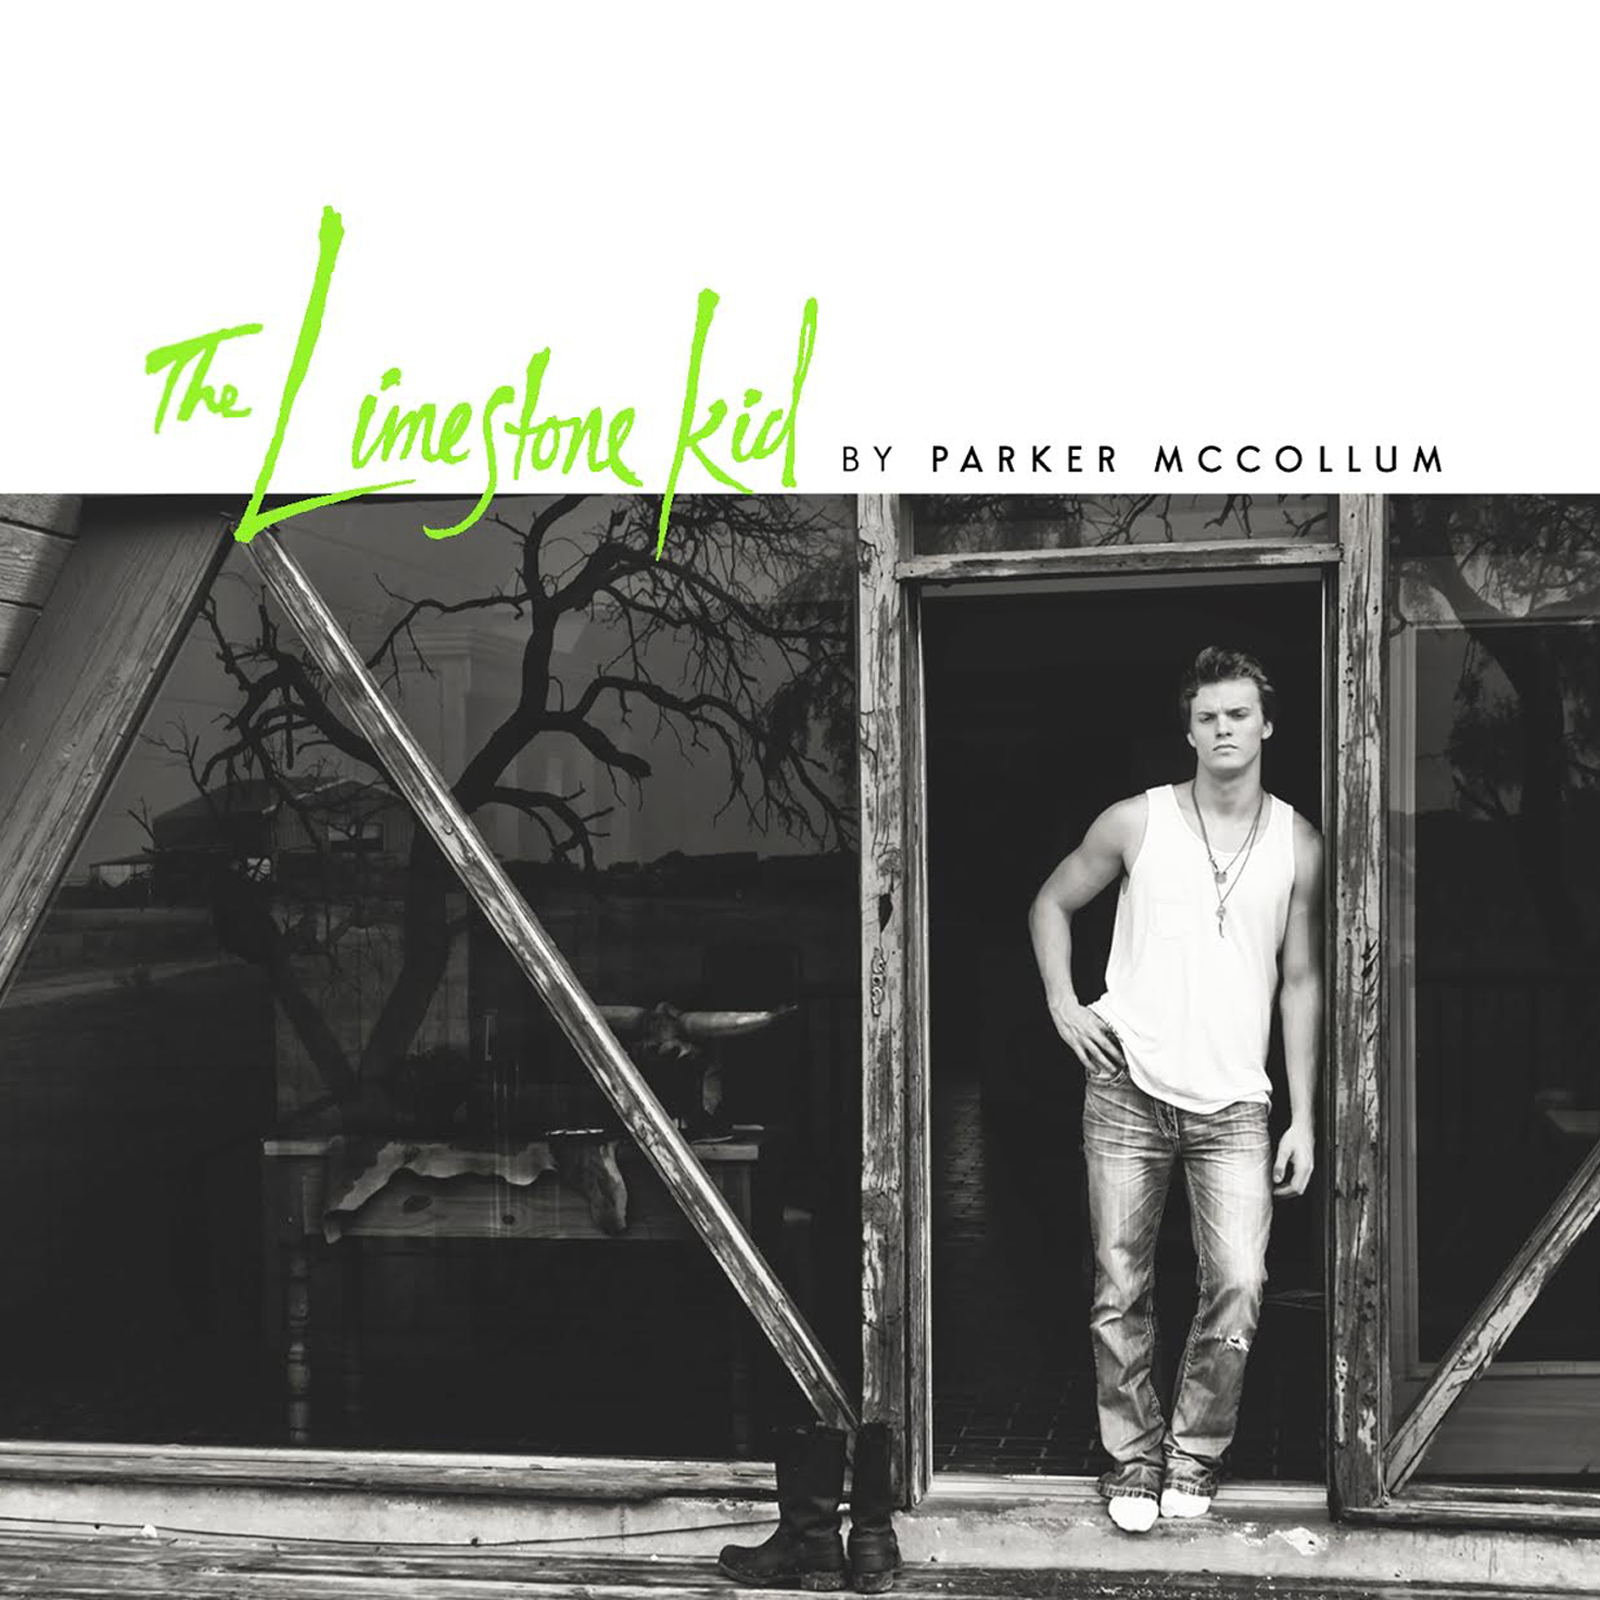 THE LIMESTONE KID   BY PARKER MCCOLLUM